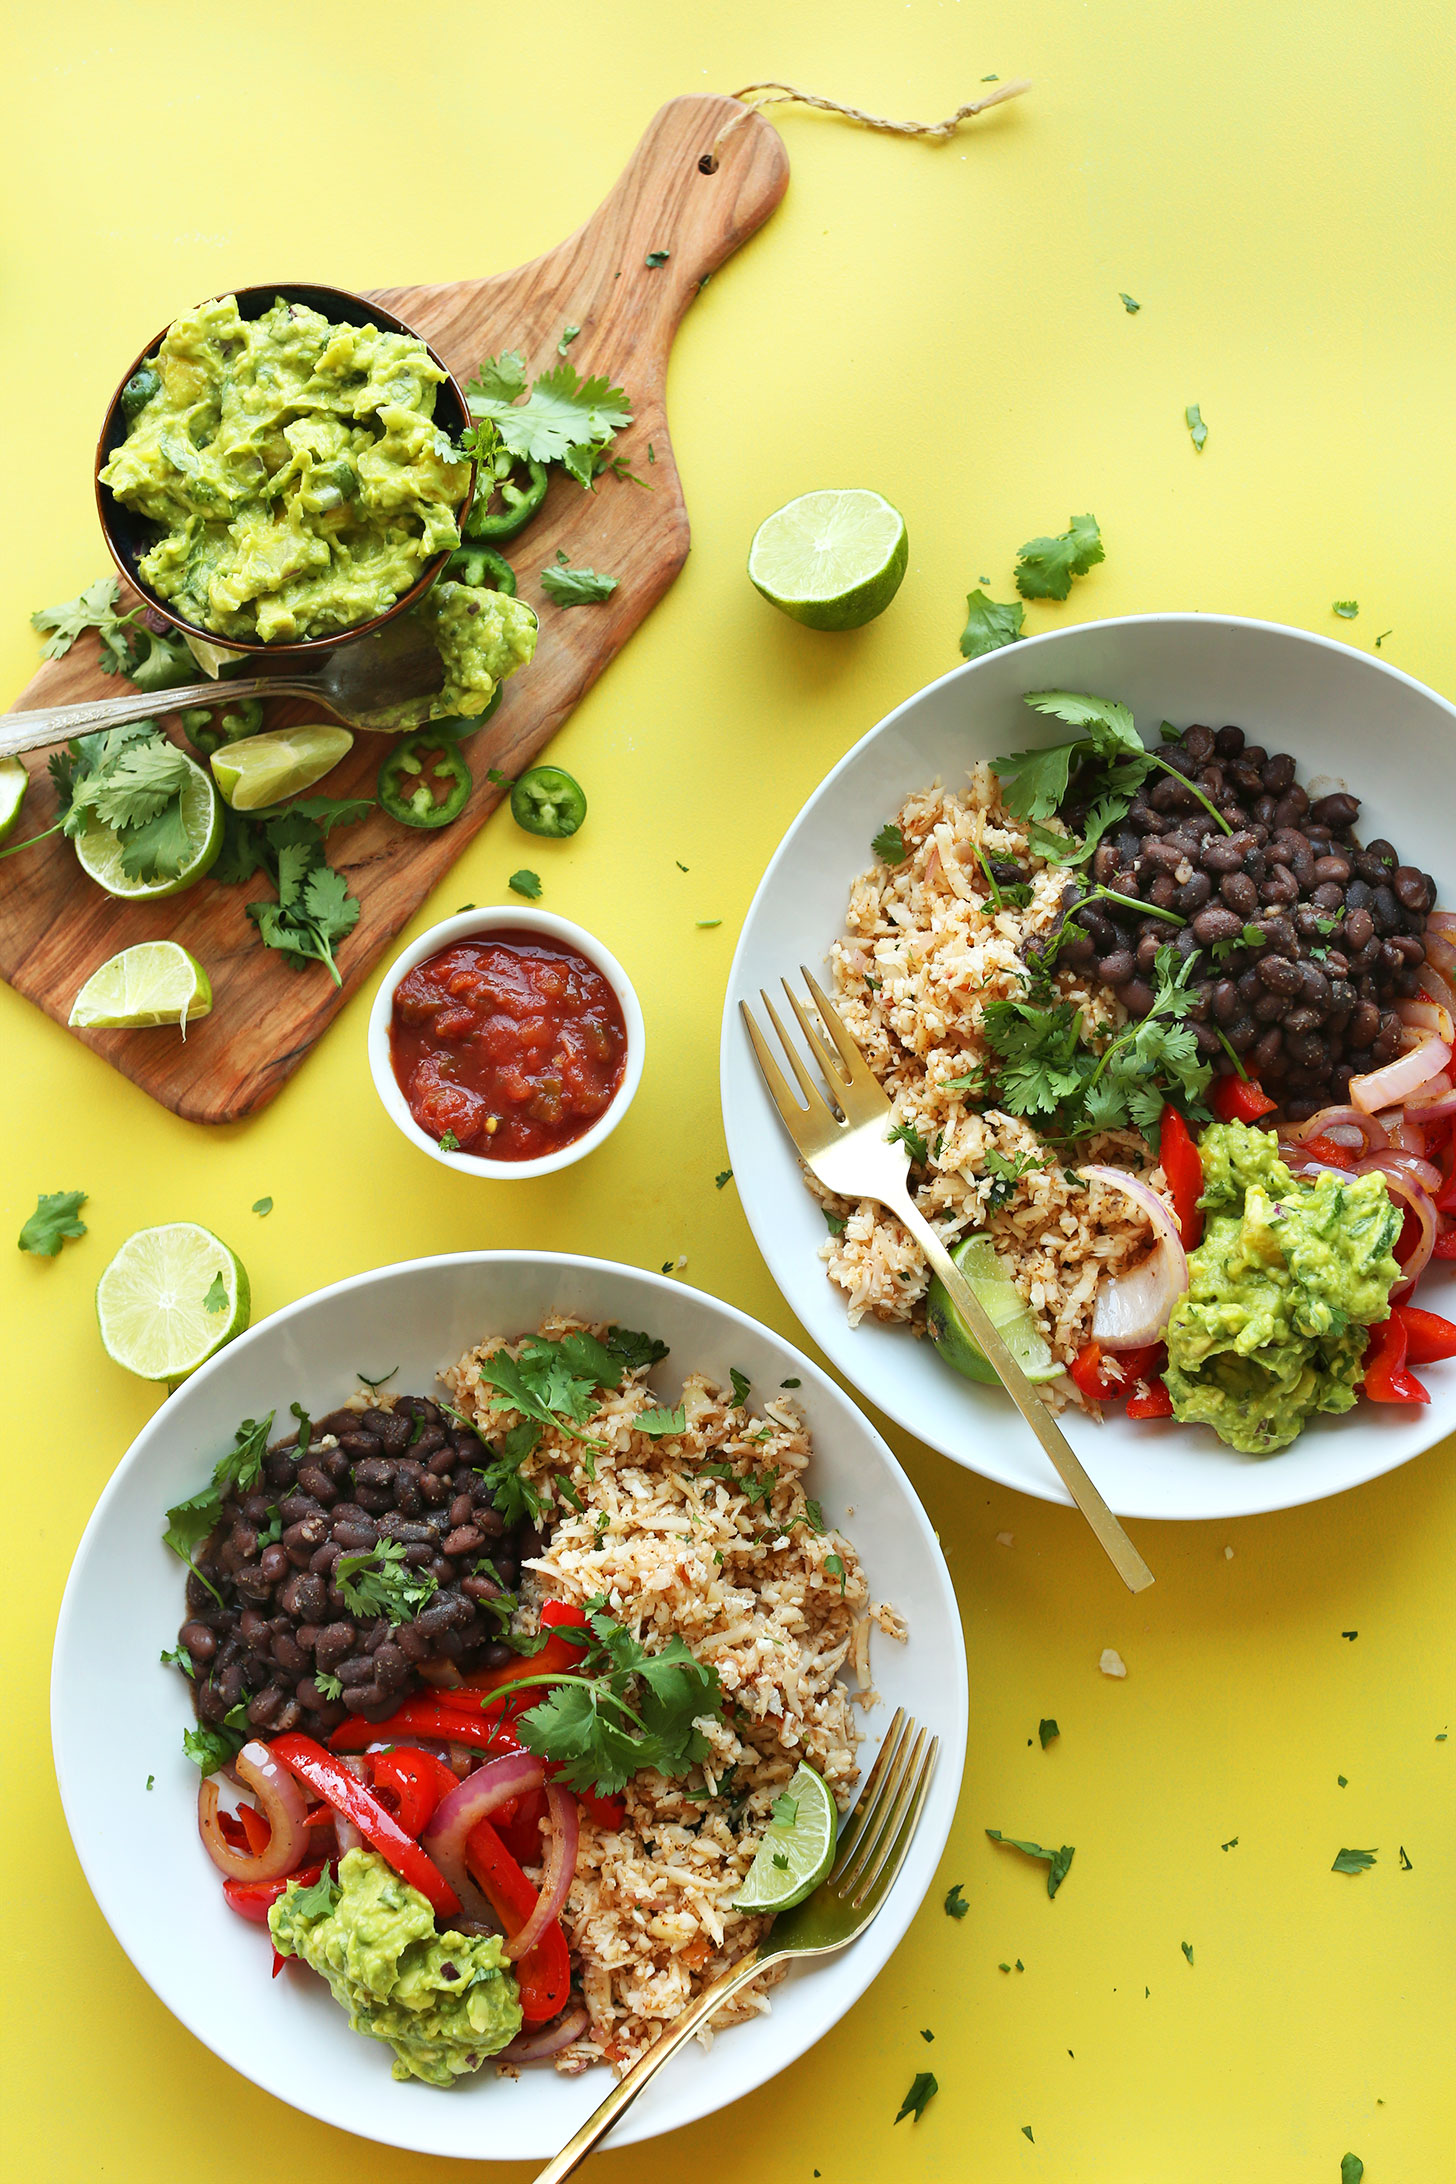 DELICIOUS CAULIFLOWER RICE Burrito Bowl! So easy, healthy, and full of fiber and protein! #vegan #glutenfree #plantbased #recipe #mexican #minimalistbaker